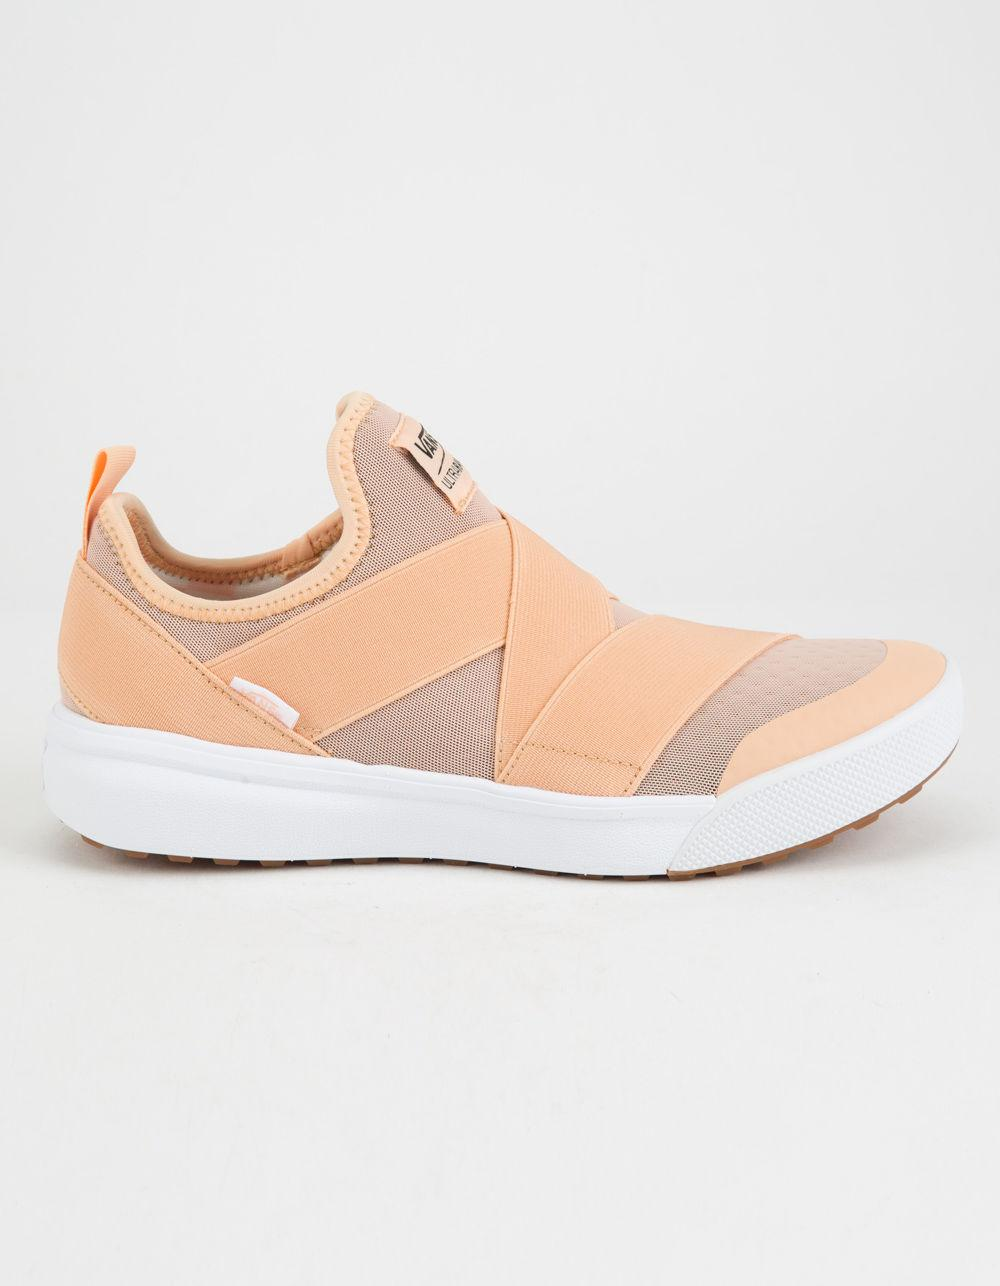 0da6bc34f09158 Lyst - Vans Ultrarange Gore Apricot Ice Womens Shoes